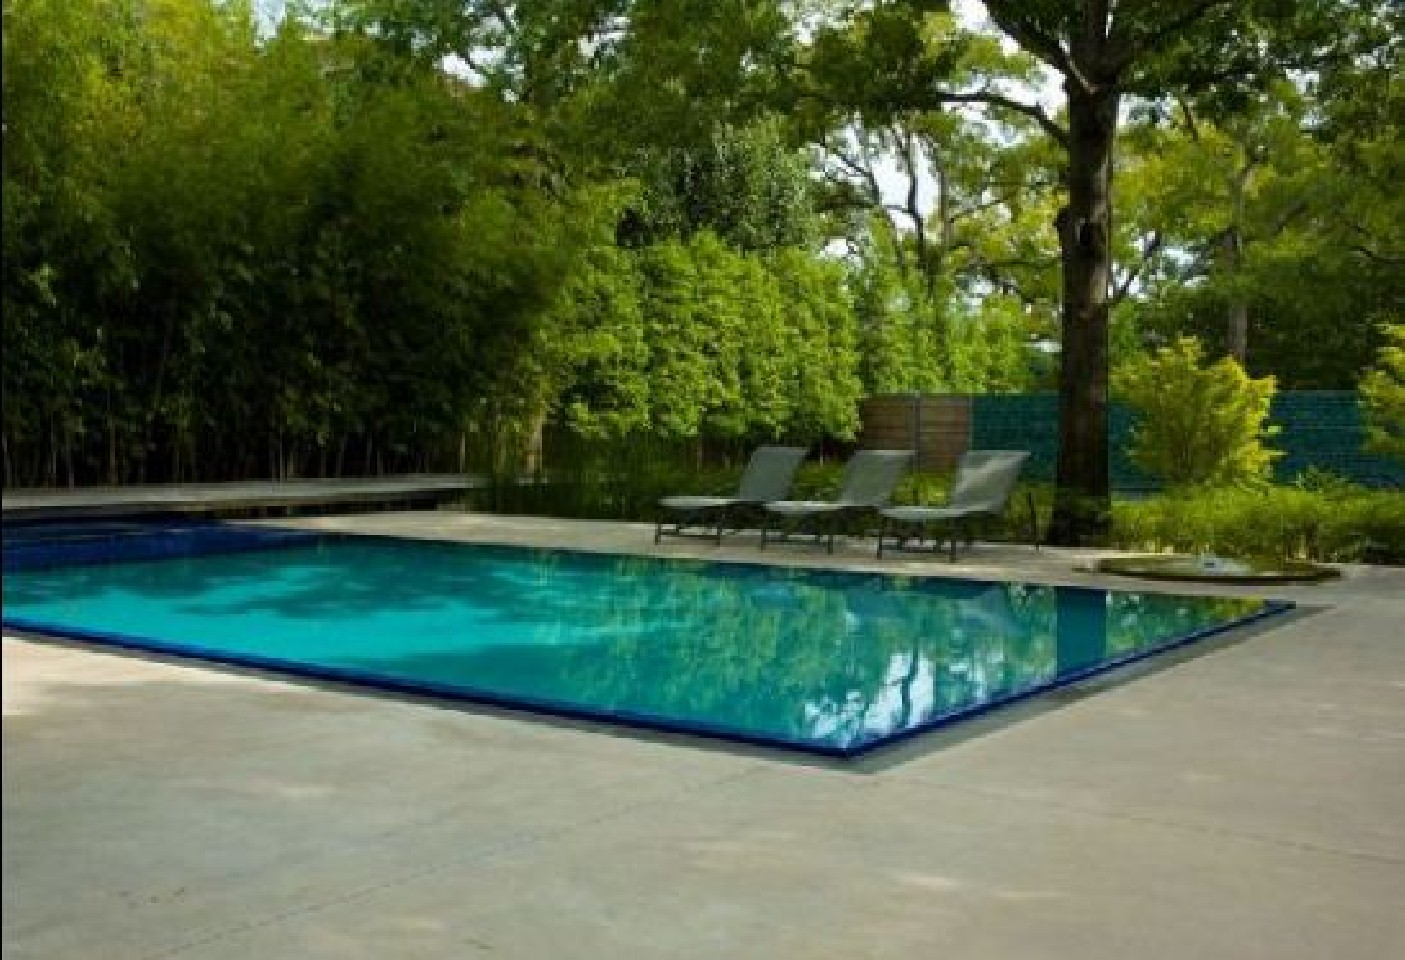 Home garden design ideas wallpapers pictures fashion for Garden pool designs ideas